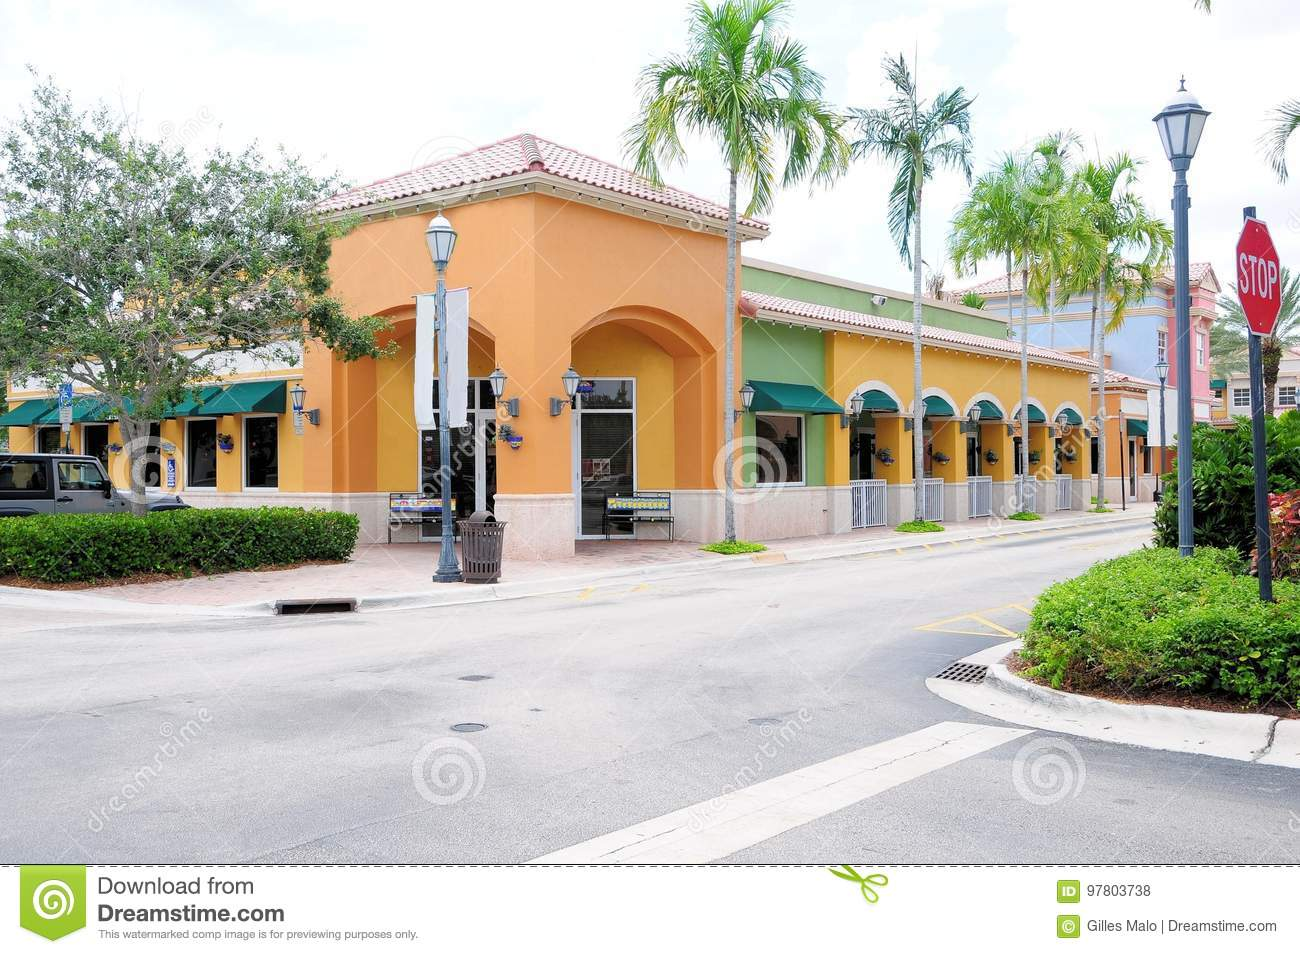 Resturant Stores Restaurant And Retail Stores Fl Stock Photo Image Of Paint